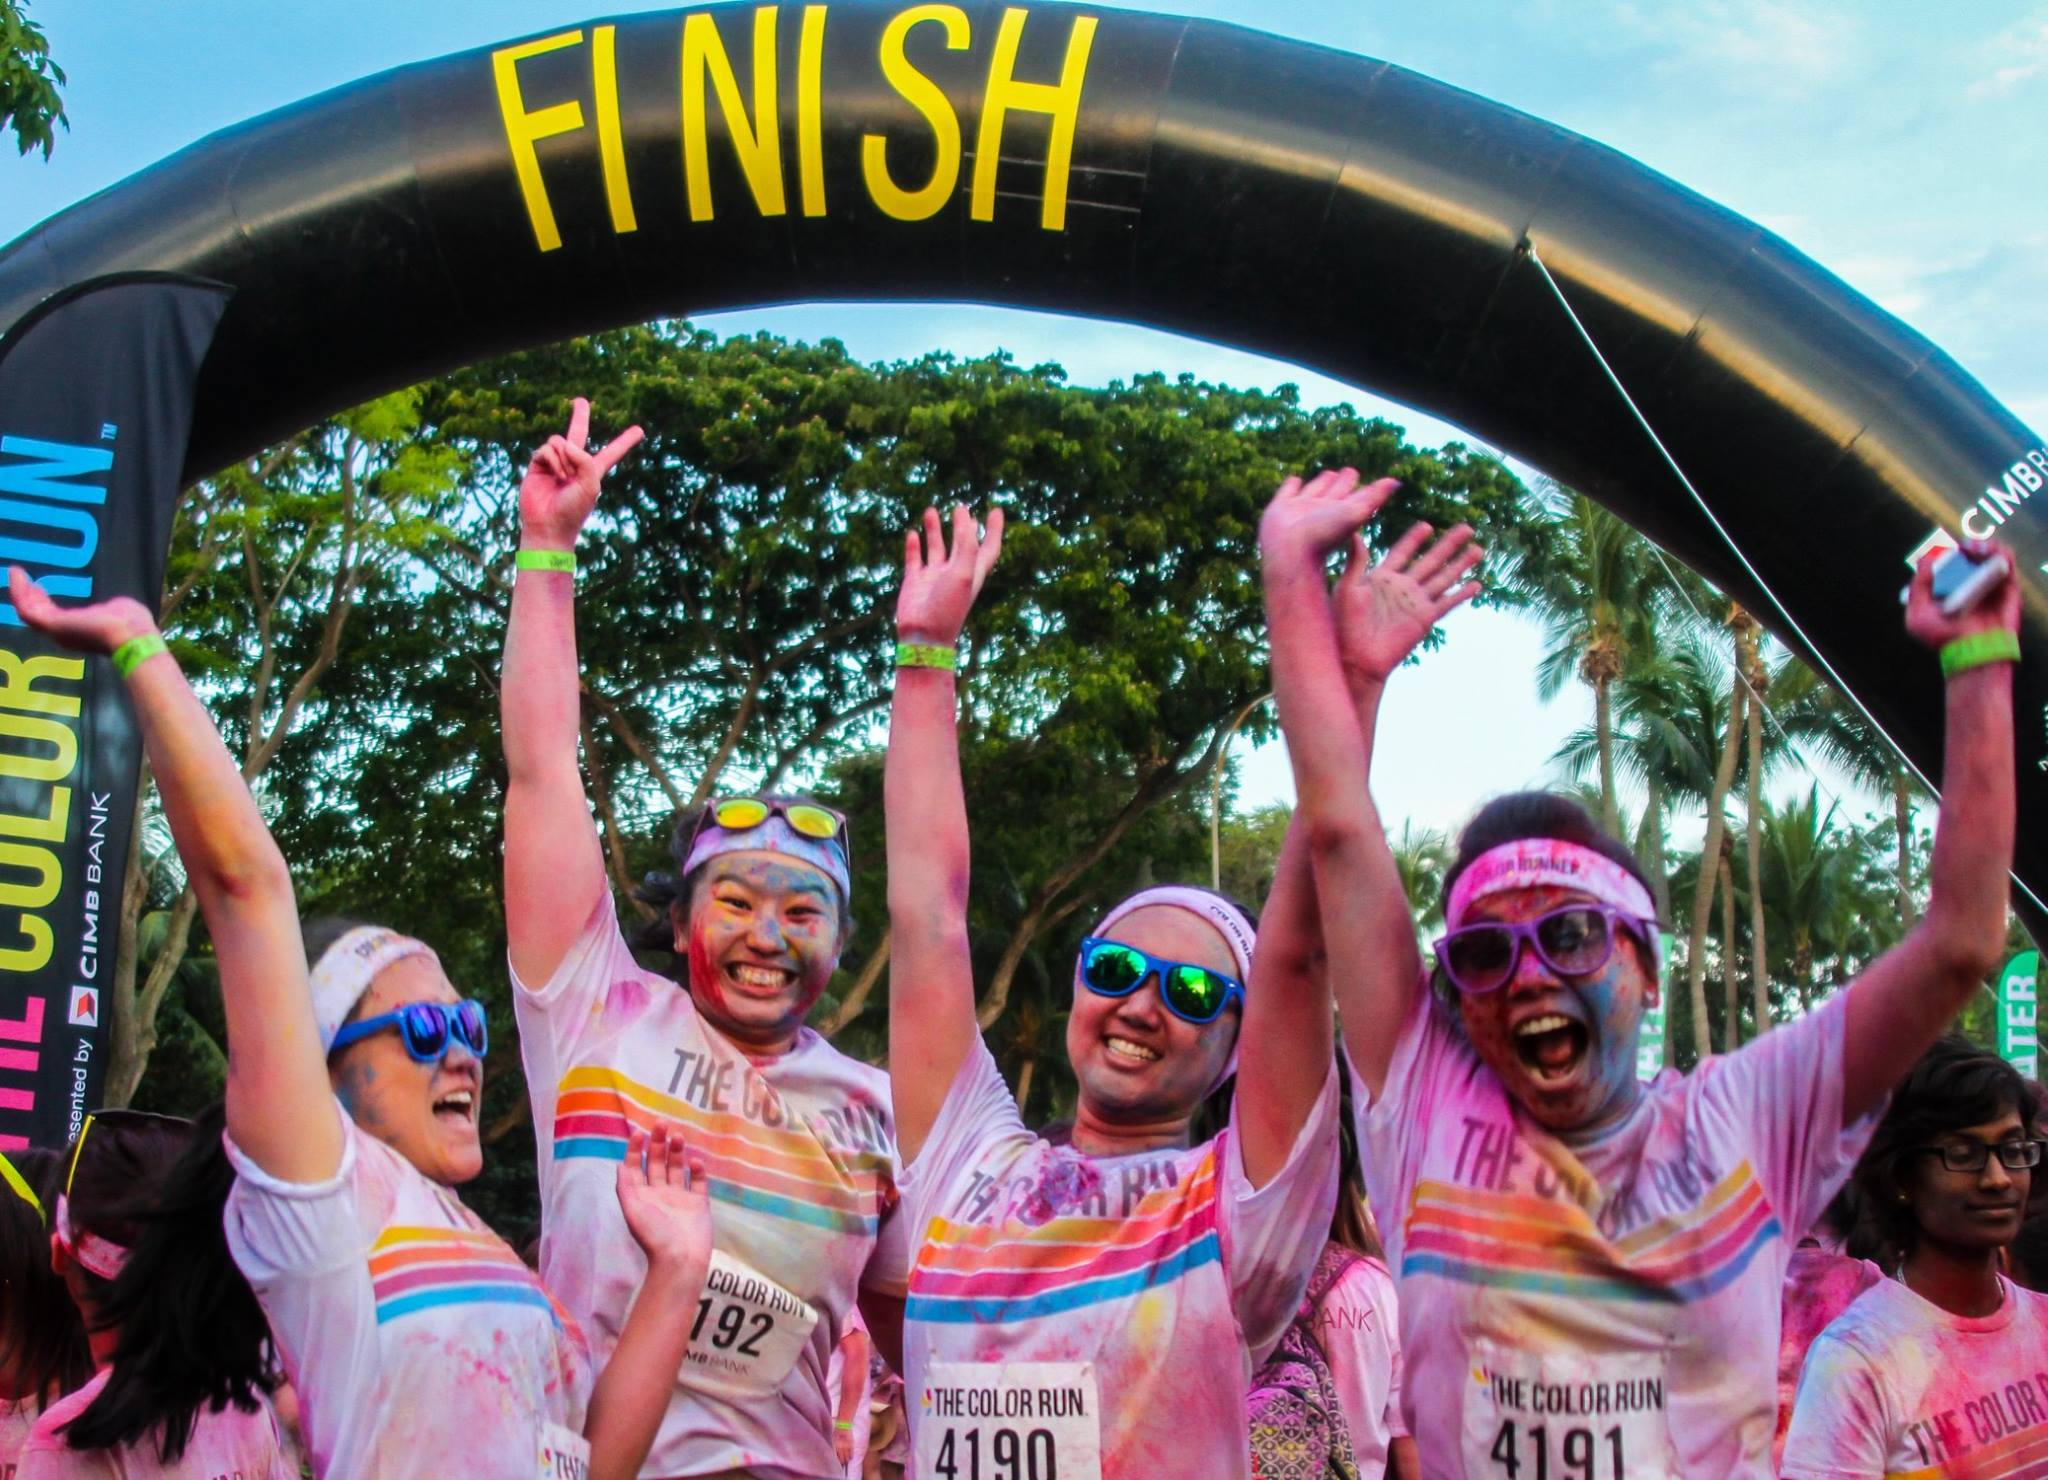 15 Themed Runs In Singapore That Will Actually Make You Want To Run